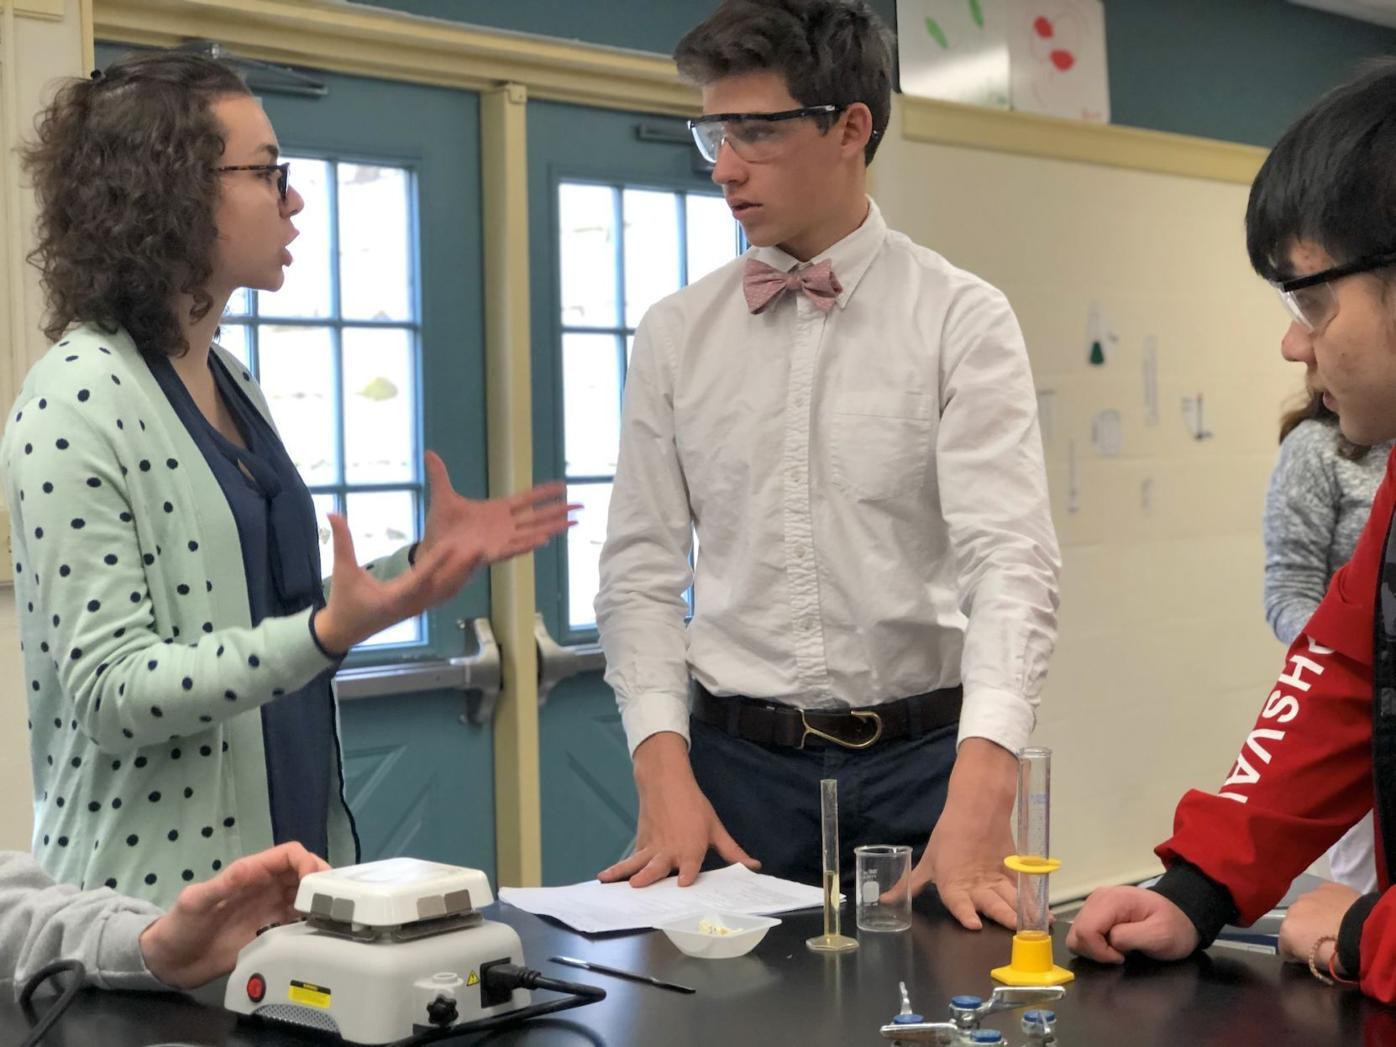 Educating for sustainability at Gunston through green chemistry